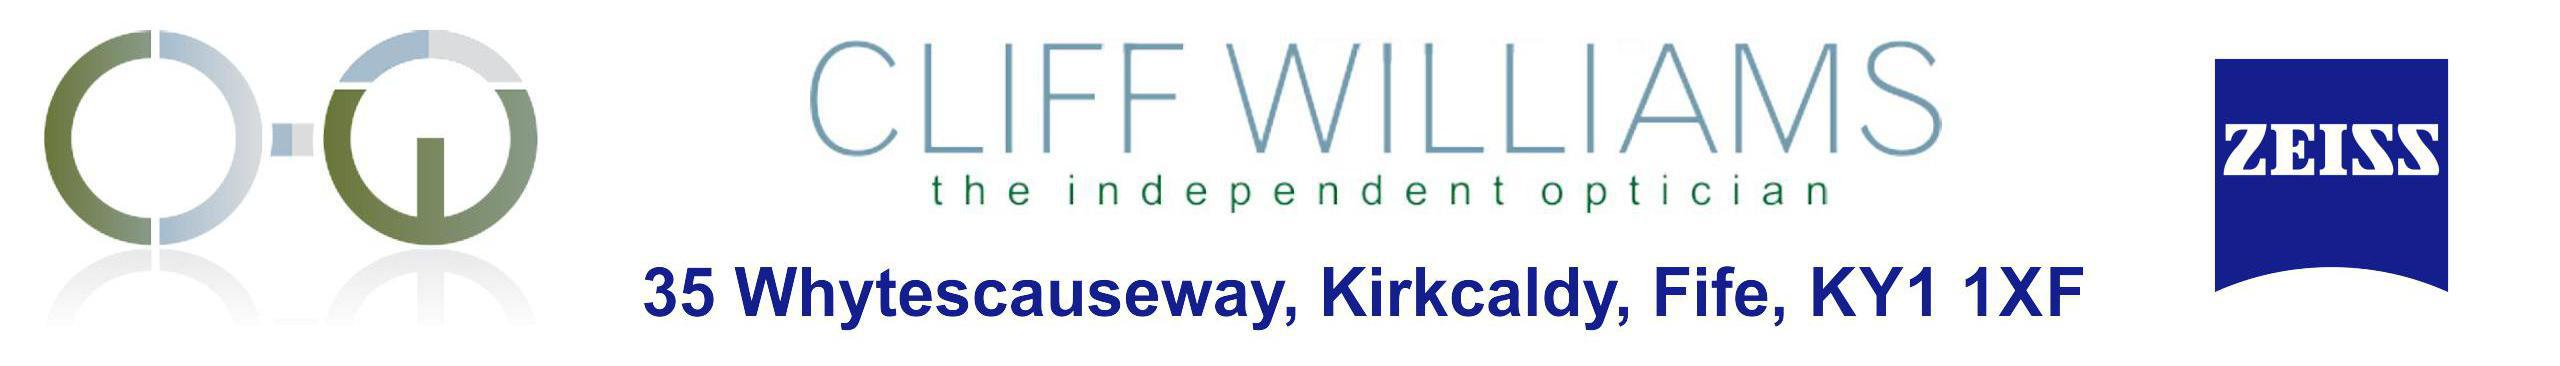 Cliff Williams Independent Optician 35 Whytescauseway, Kirkcaldy, Fife, KY1 1XF Telephone +4401592642422 email cliff@cliffwilliams.co.uk